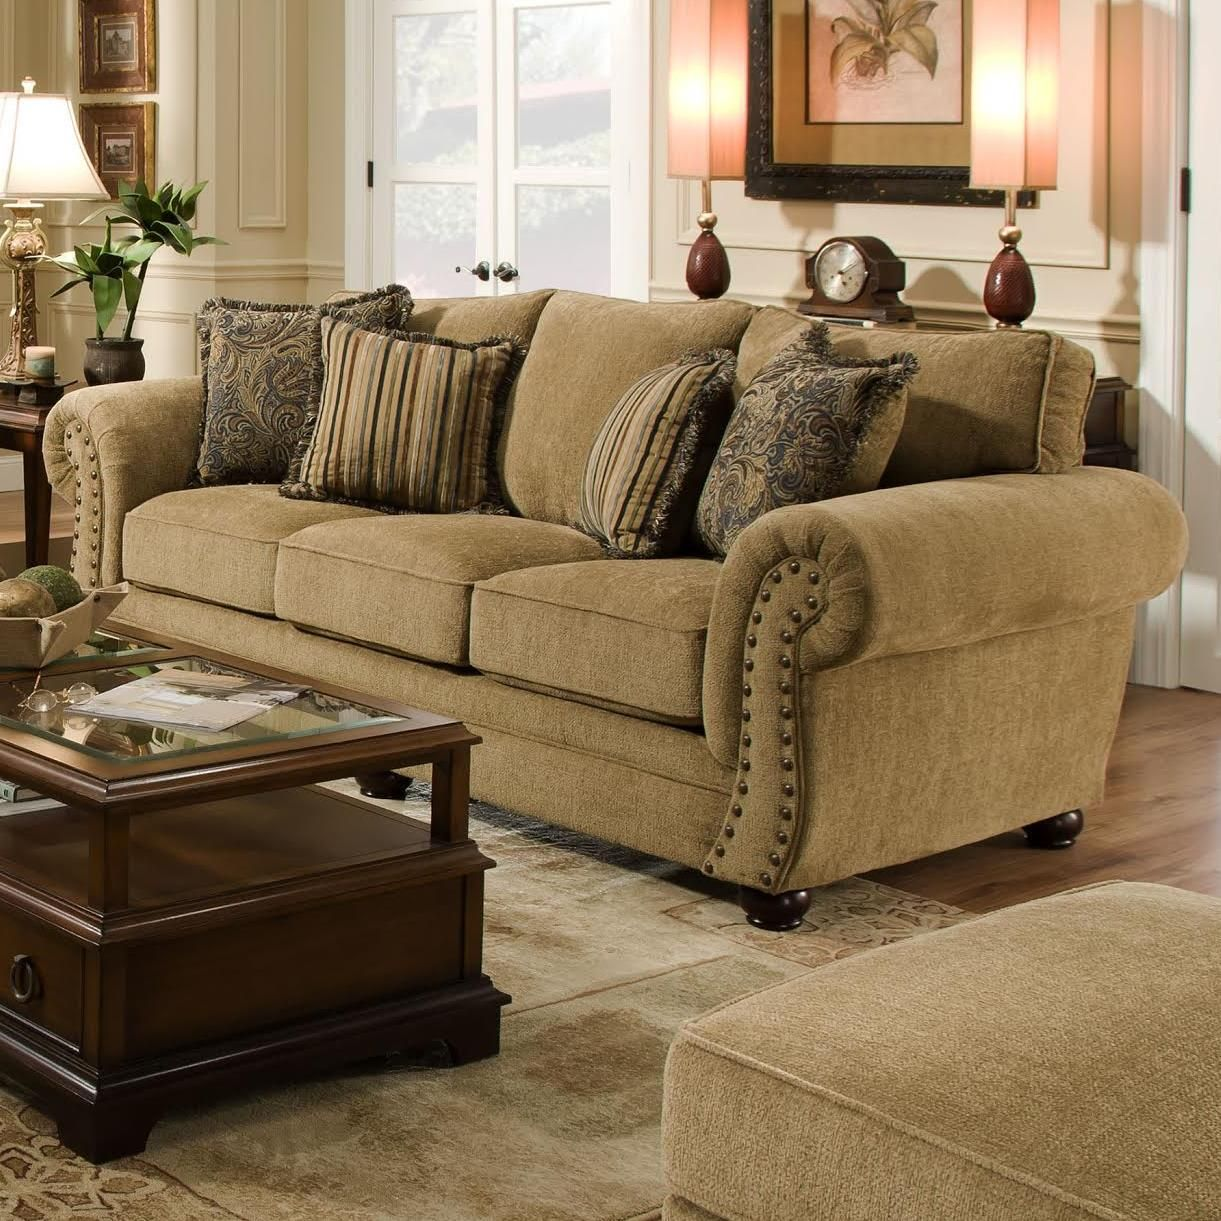 simmons sofa. simmons upholstery 4277 sofa | royal furniture memphis, jackson, tn, southaven a